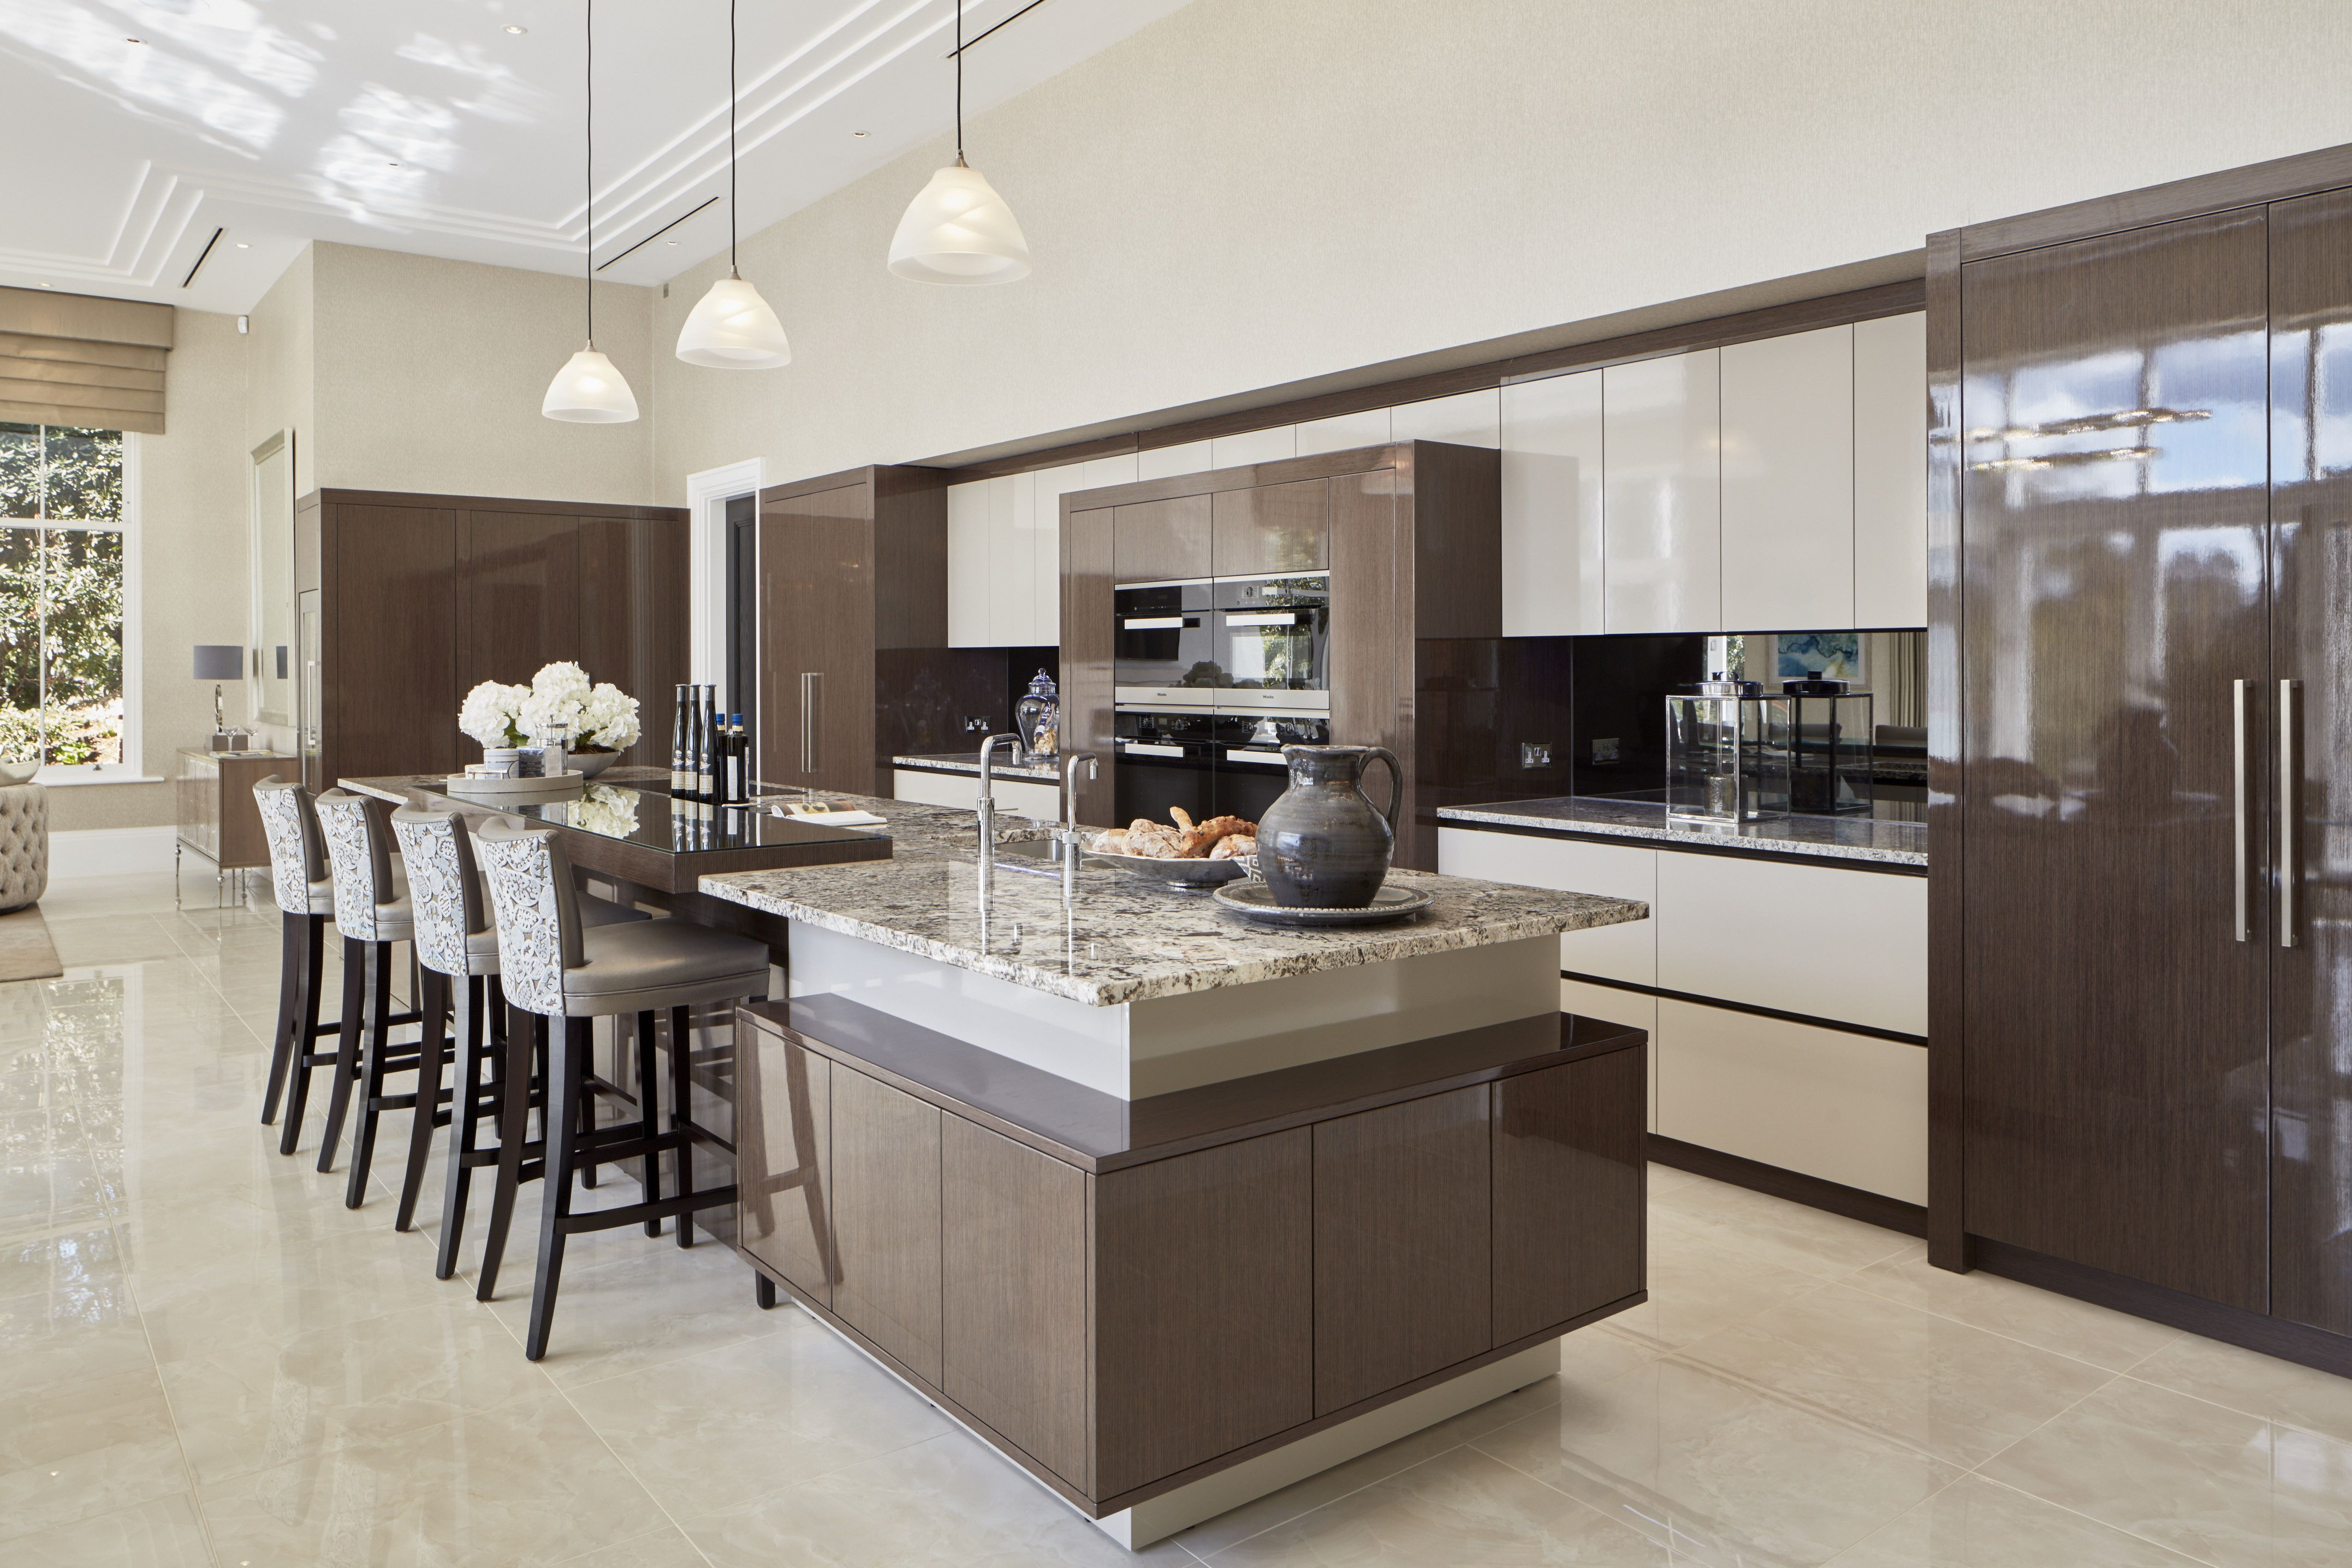 Best Home Decor Kitchen Image By Gd Interiors On K I T C H E N 400 x 300